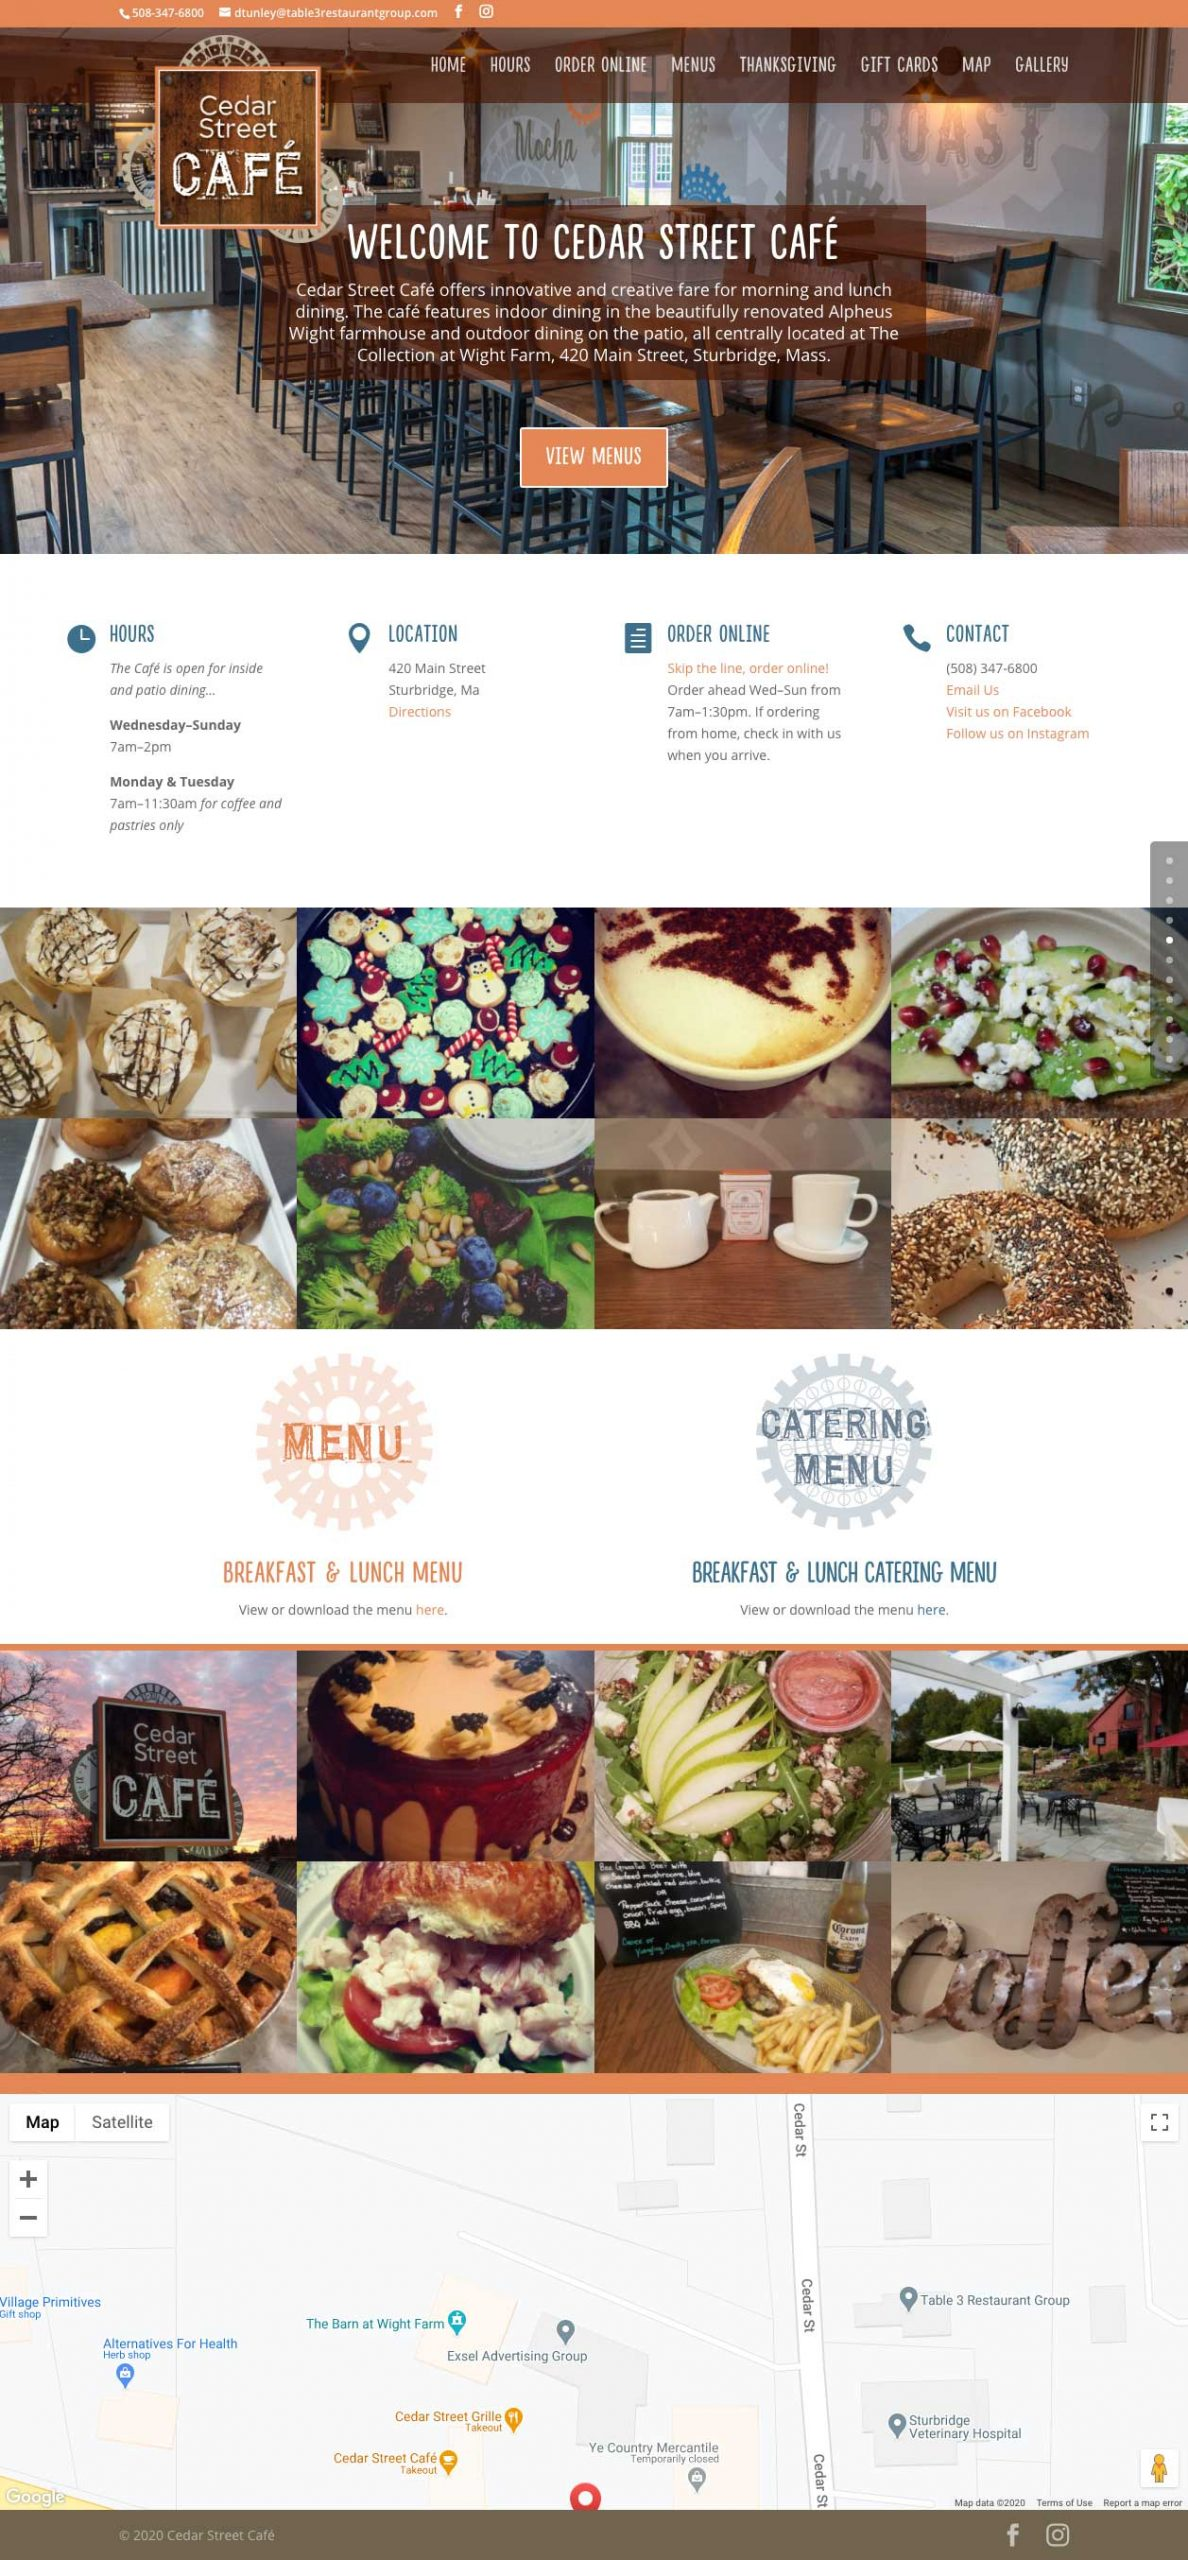 One page scrolling web design